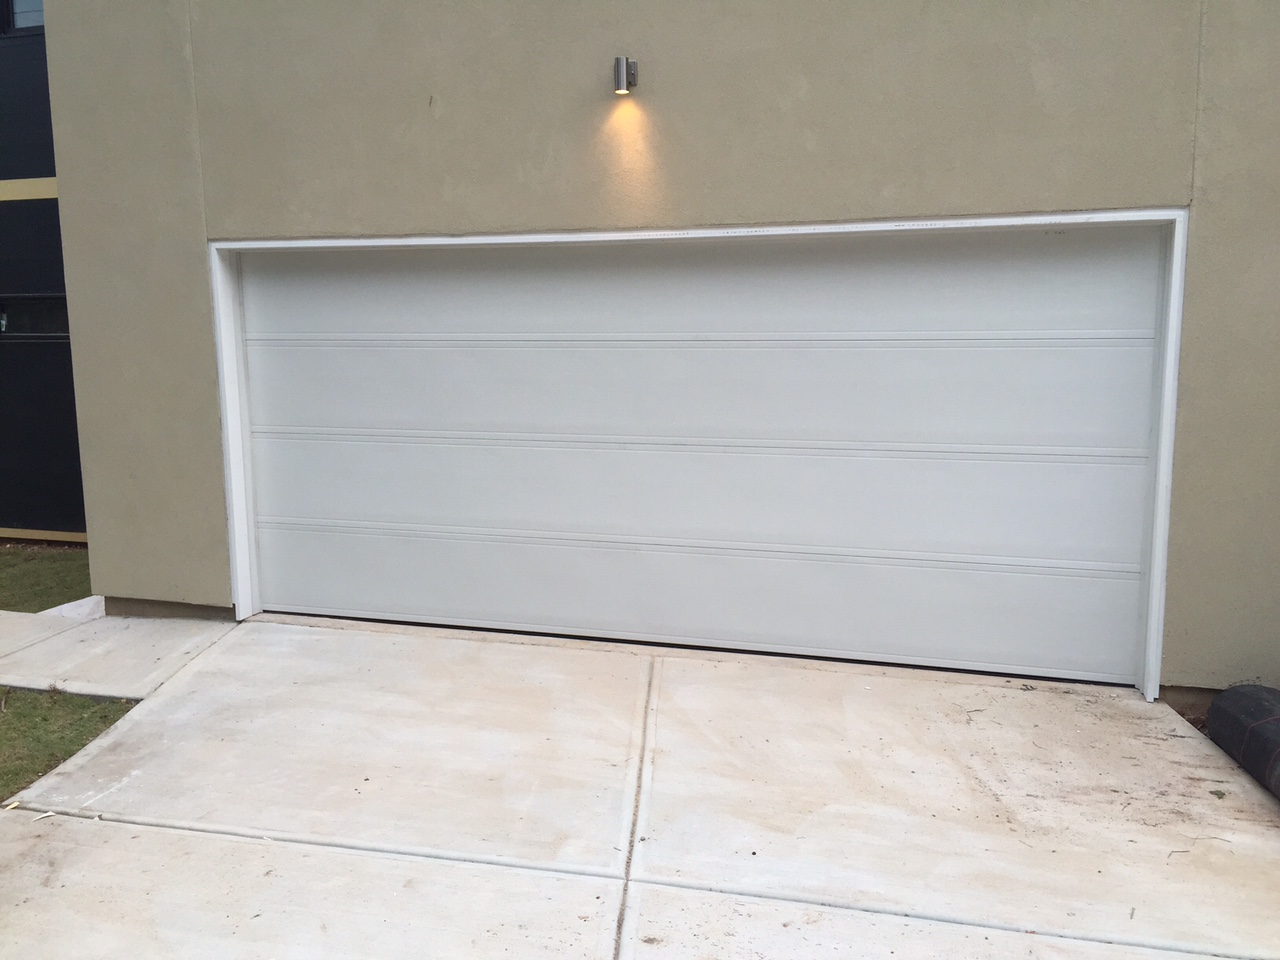 960 #826649 We Fix Broken Springs picture/photo Overhead Doors Atlanta 36591280